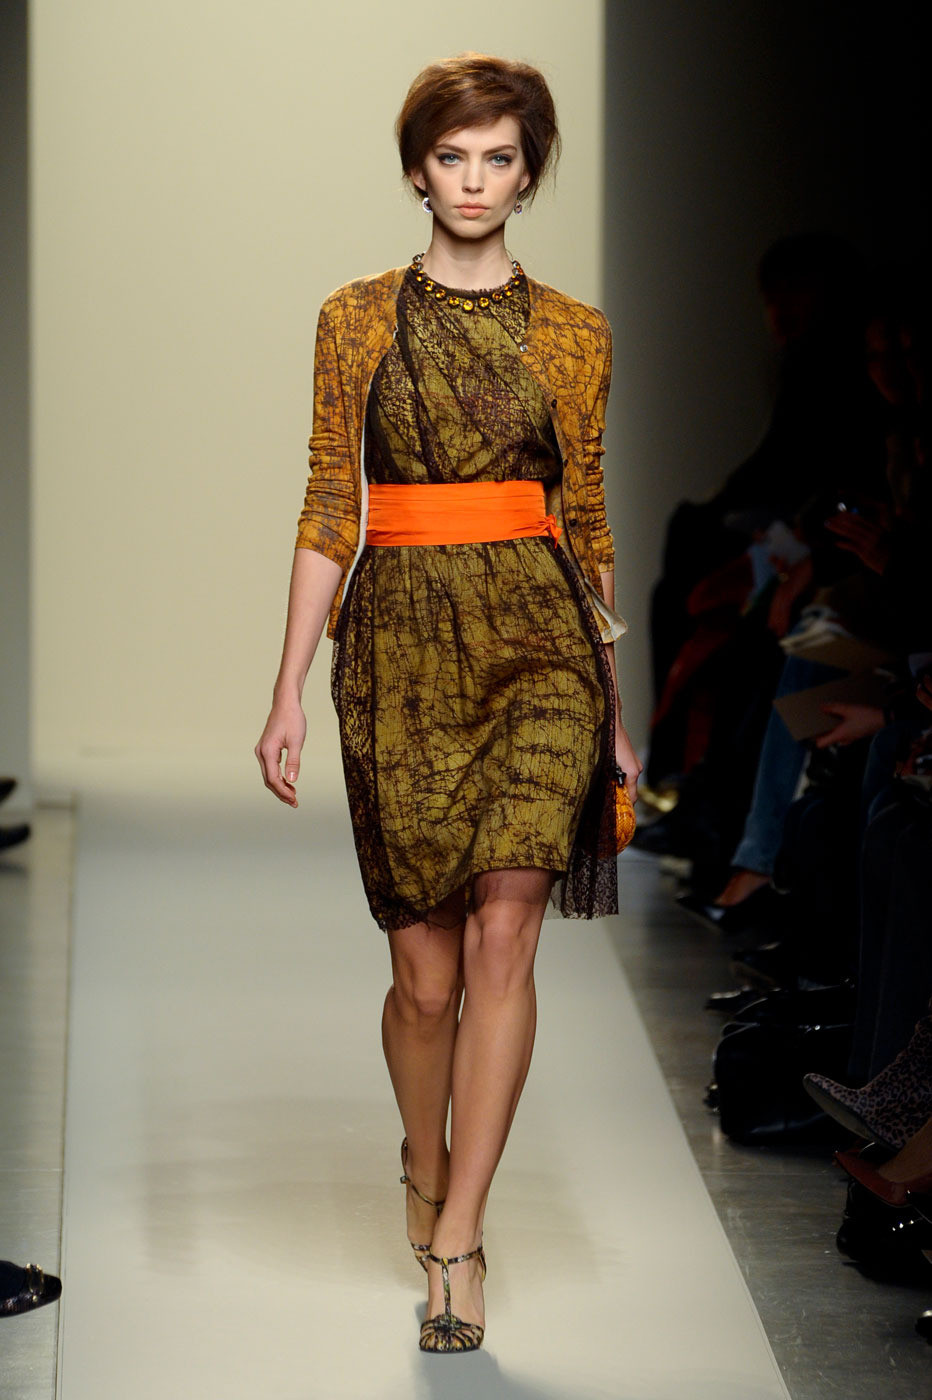 via fashioned by love | bottega veneta fall/winter 2011